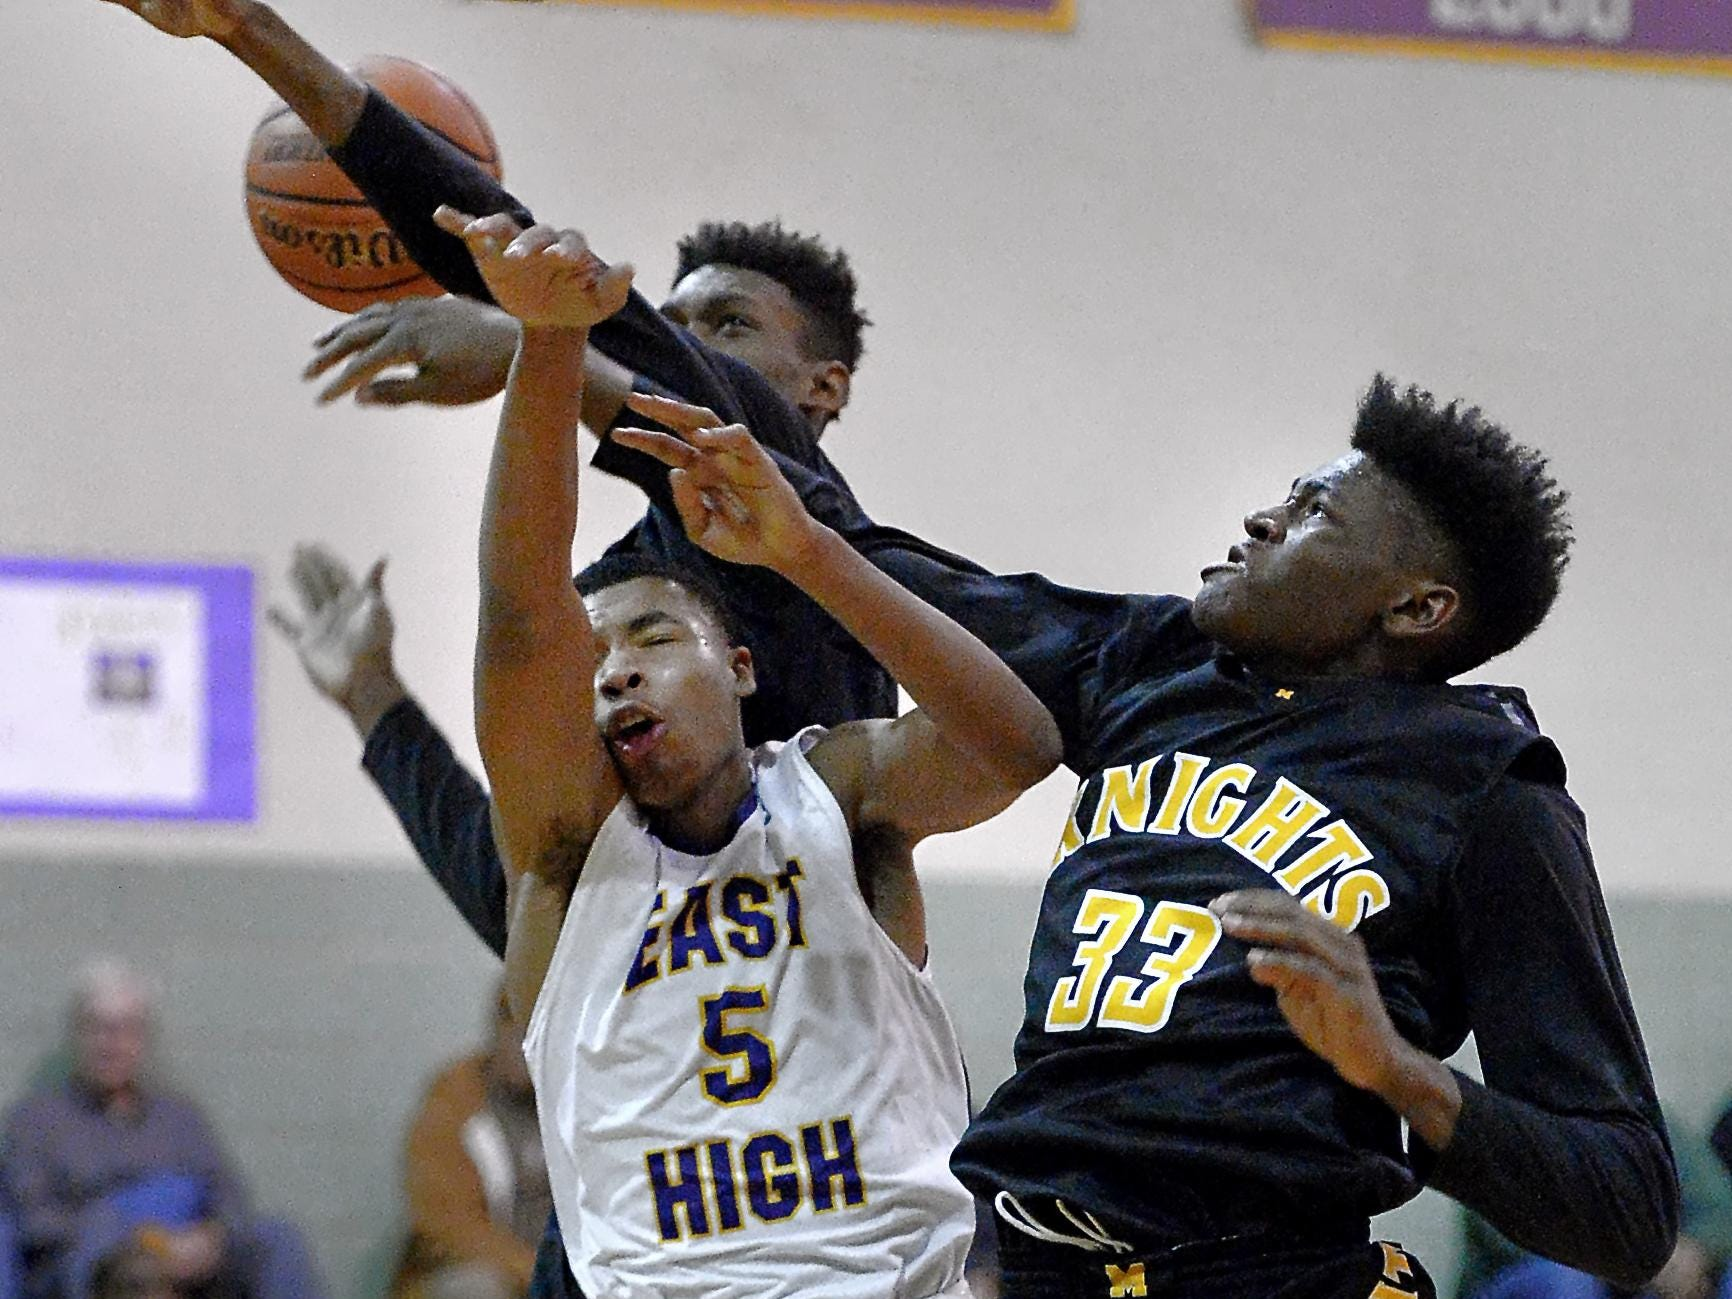 McQuaid's Isaiah Stewart, right, and Thomas Jones, back, stuff a shot attempt by East's Theodore Buckner during a regular season RCAC game played at East High School on Tuesday. McQuaid beat East 80-73.